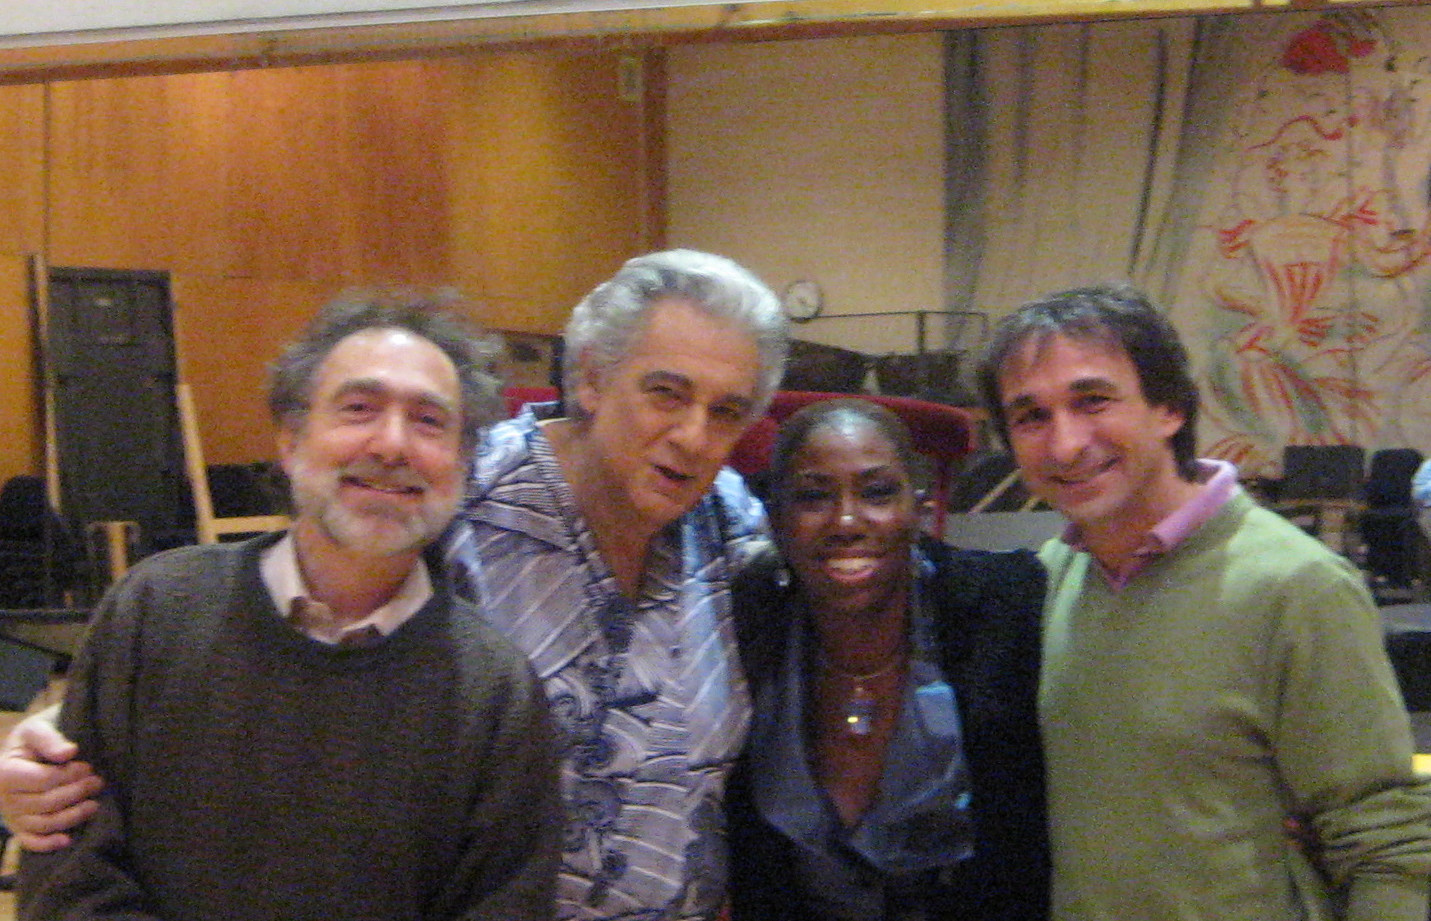 Backstage at the Met with Placido Domingo, Maestro Marco Armiliato, and Jonathan Khuner